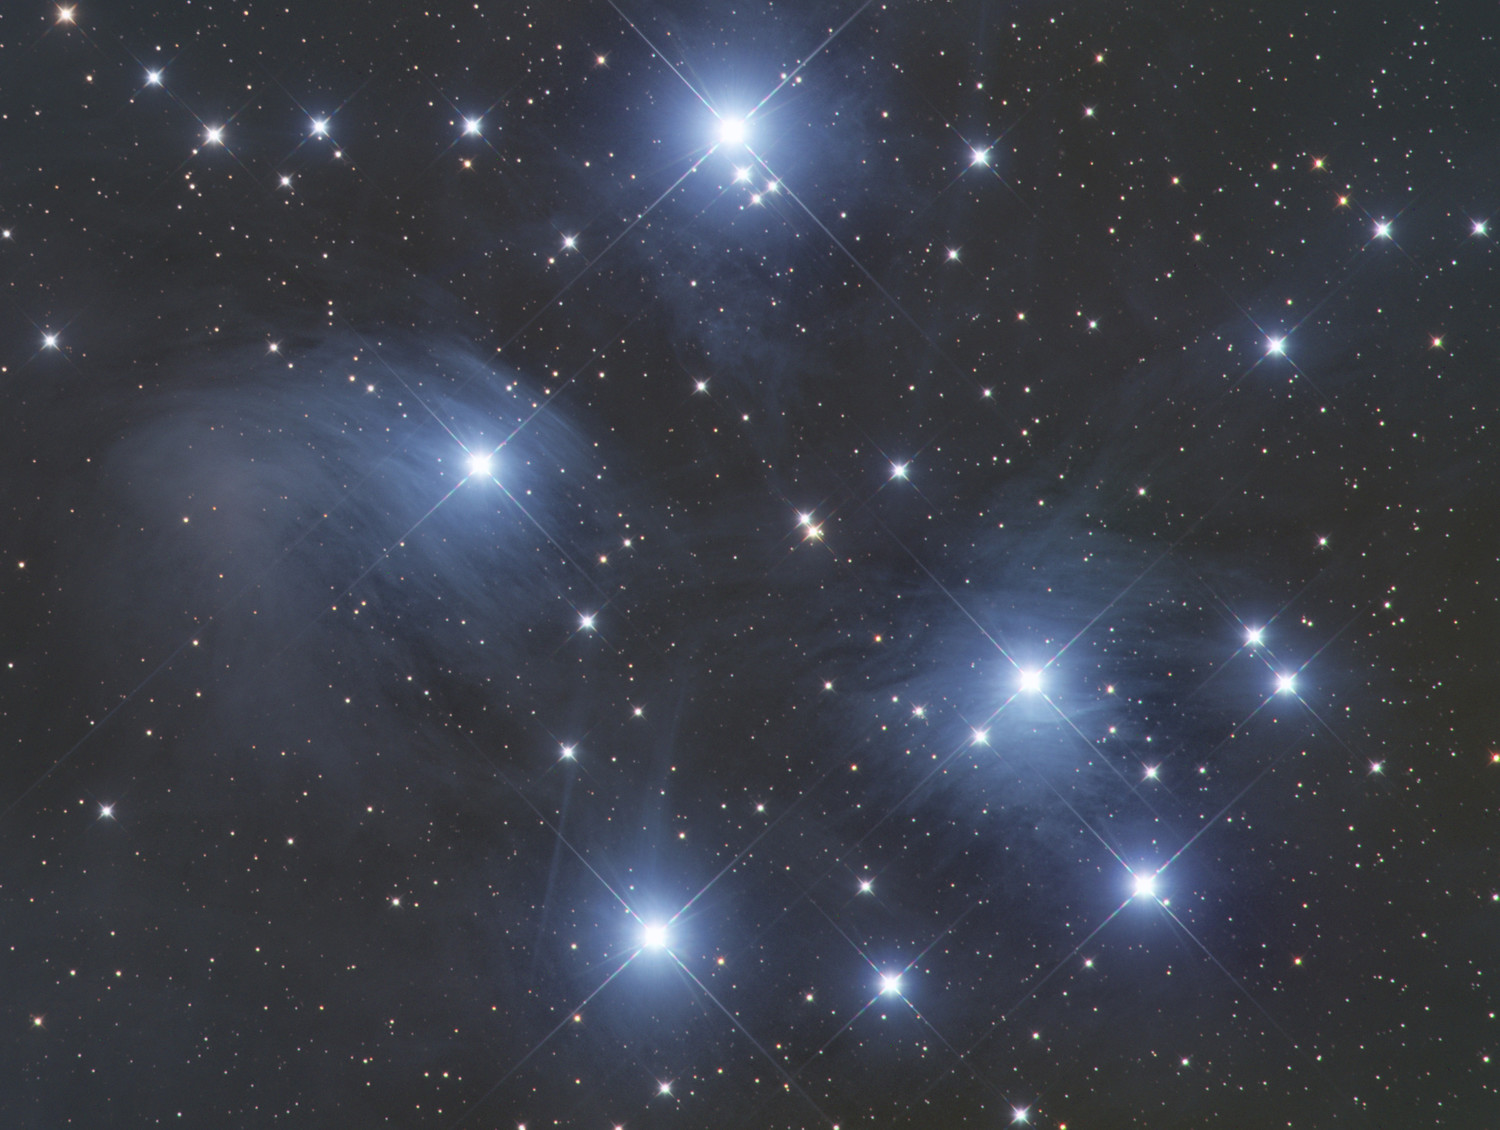 #4 The Pleiades or The Seven Sisters - aka M45